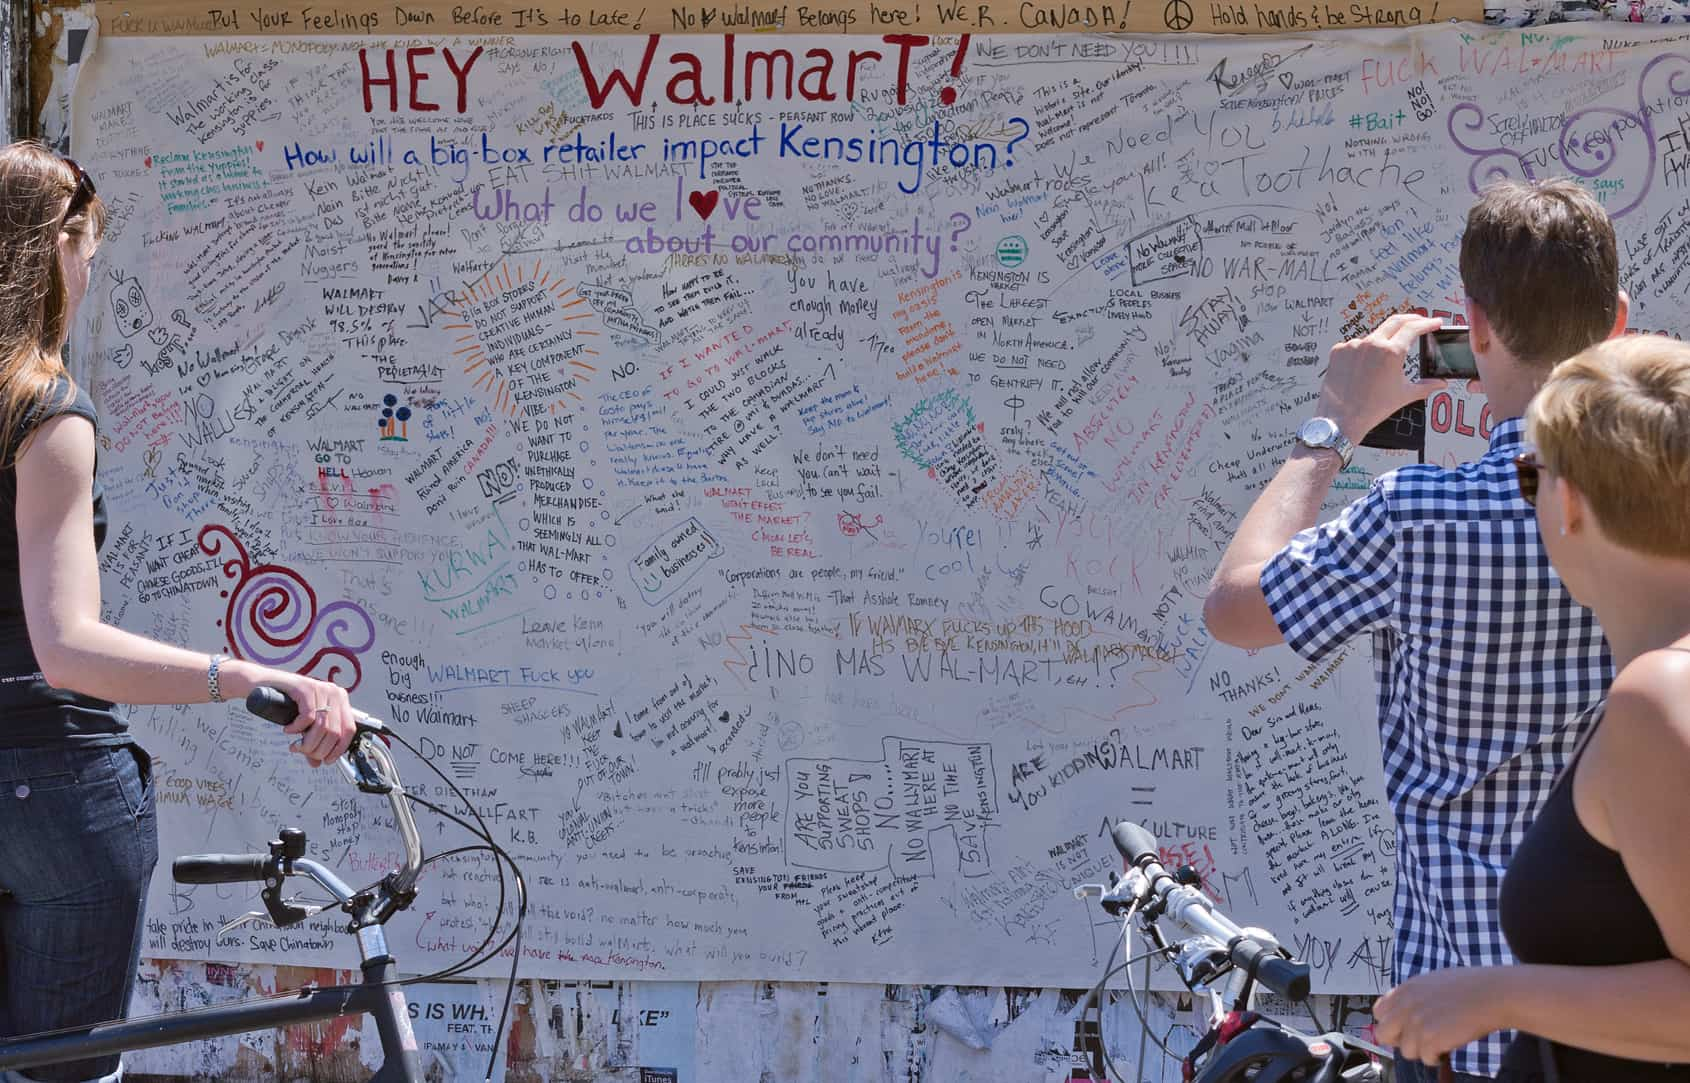 Friends of Kensington raised over $23,000 to study impact of Walmart